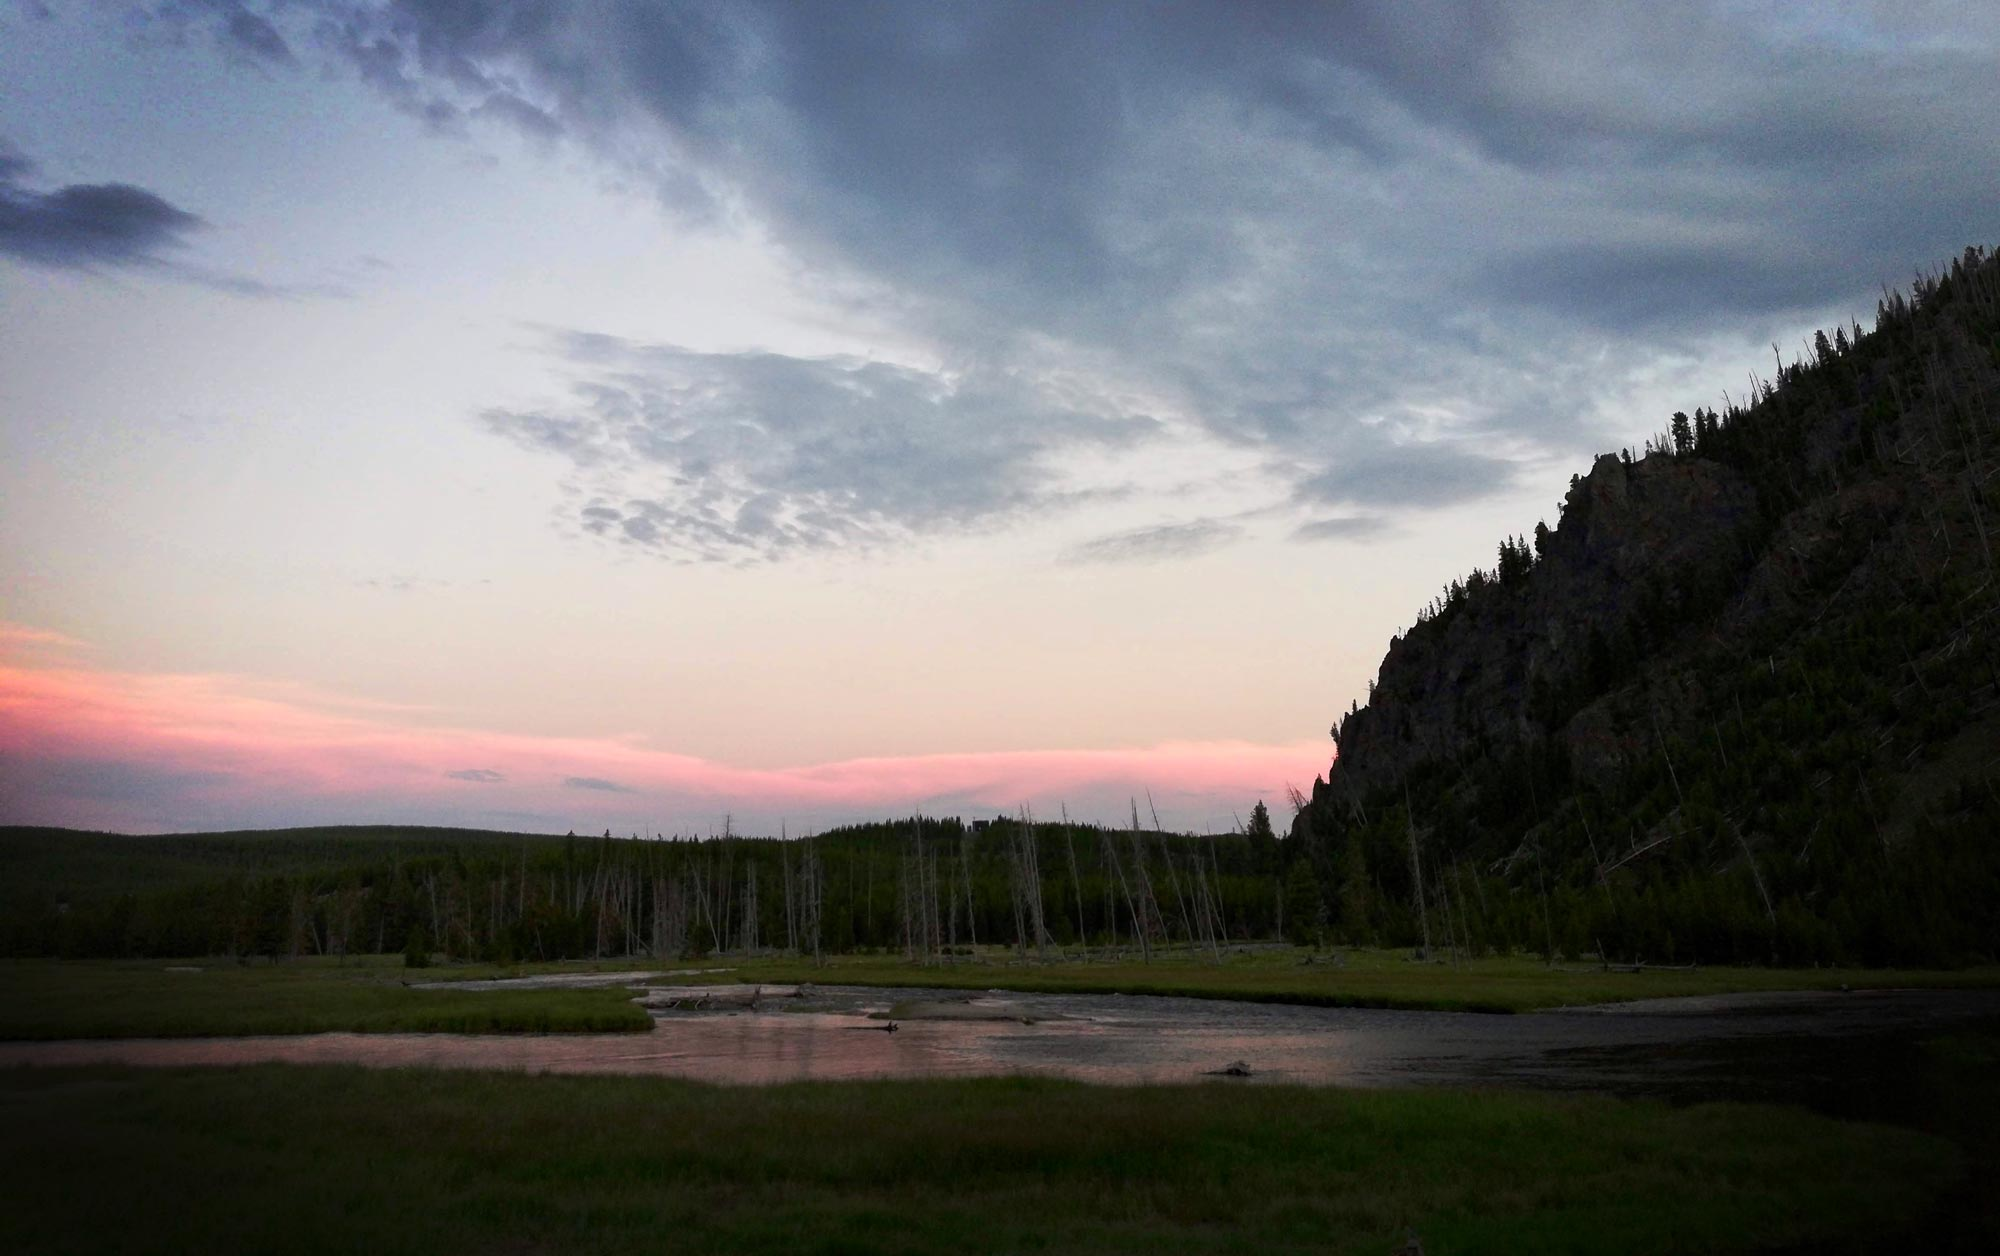 Sunset on Madison River near Madison Campground in Yellowstone National Park